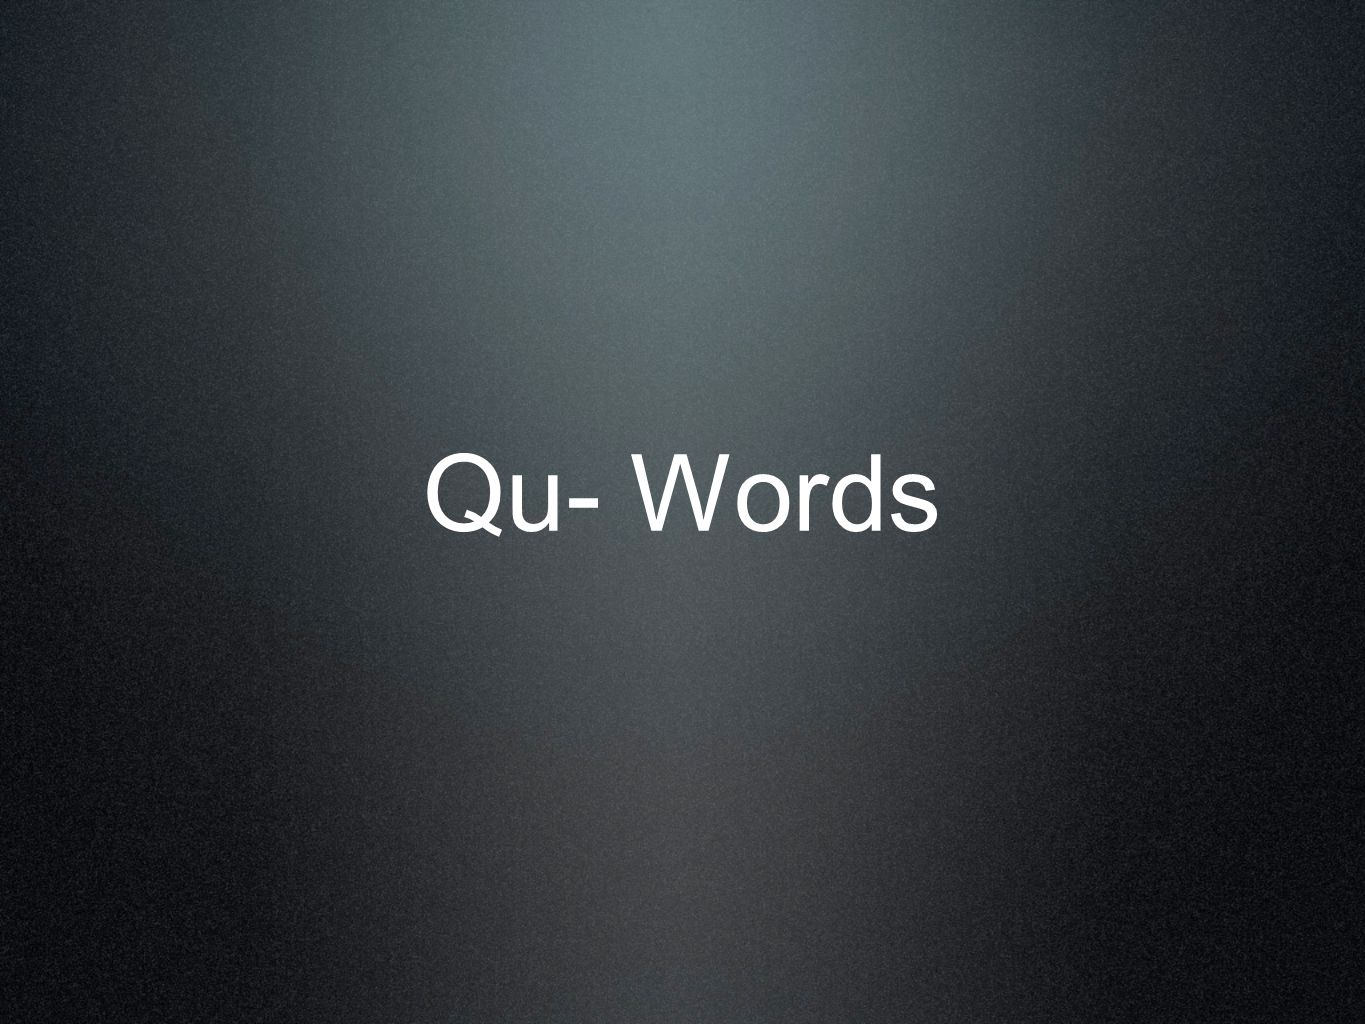 Qu- Words